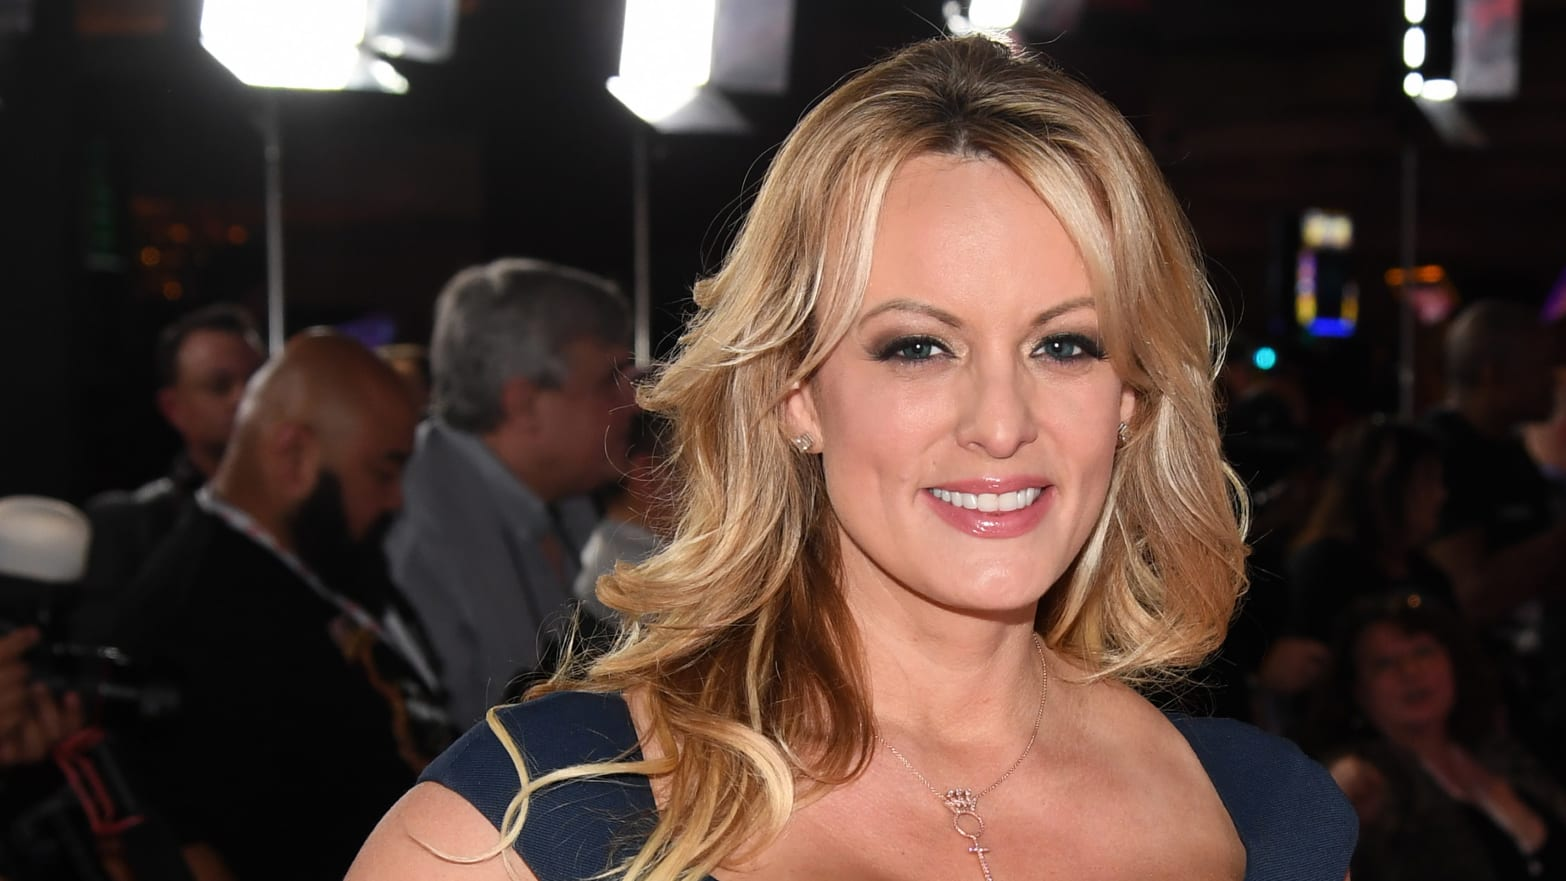 Stormy Daniels Mocks Trump Sex in First Stand-Up Comedy Appearance in Houston